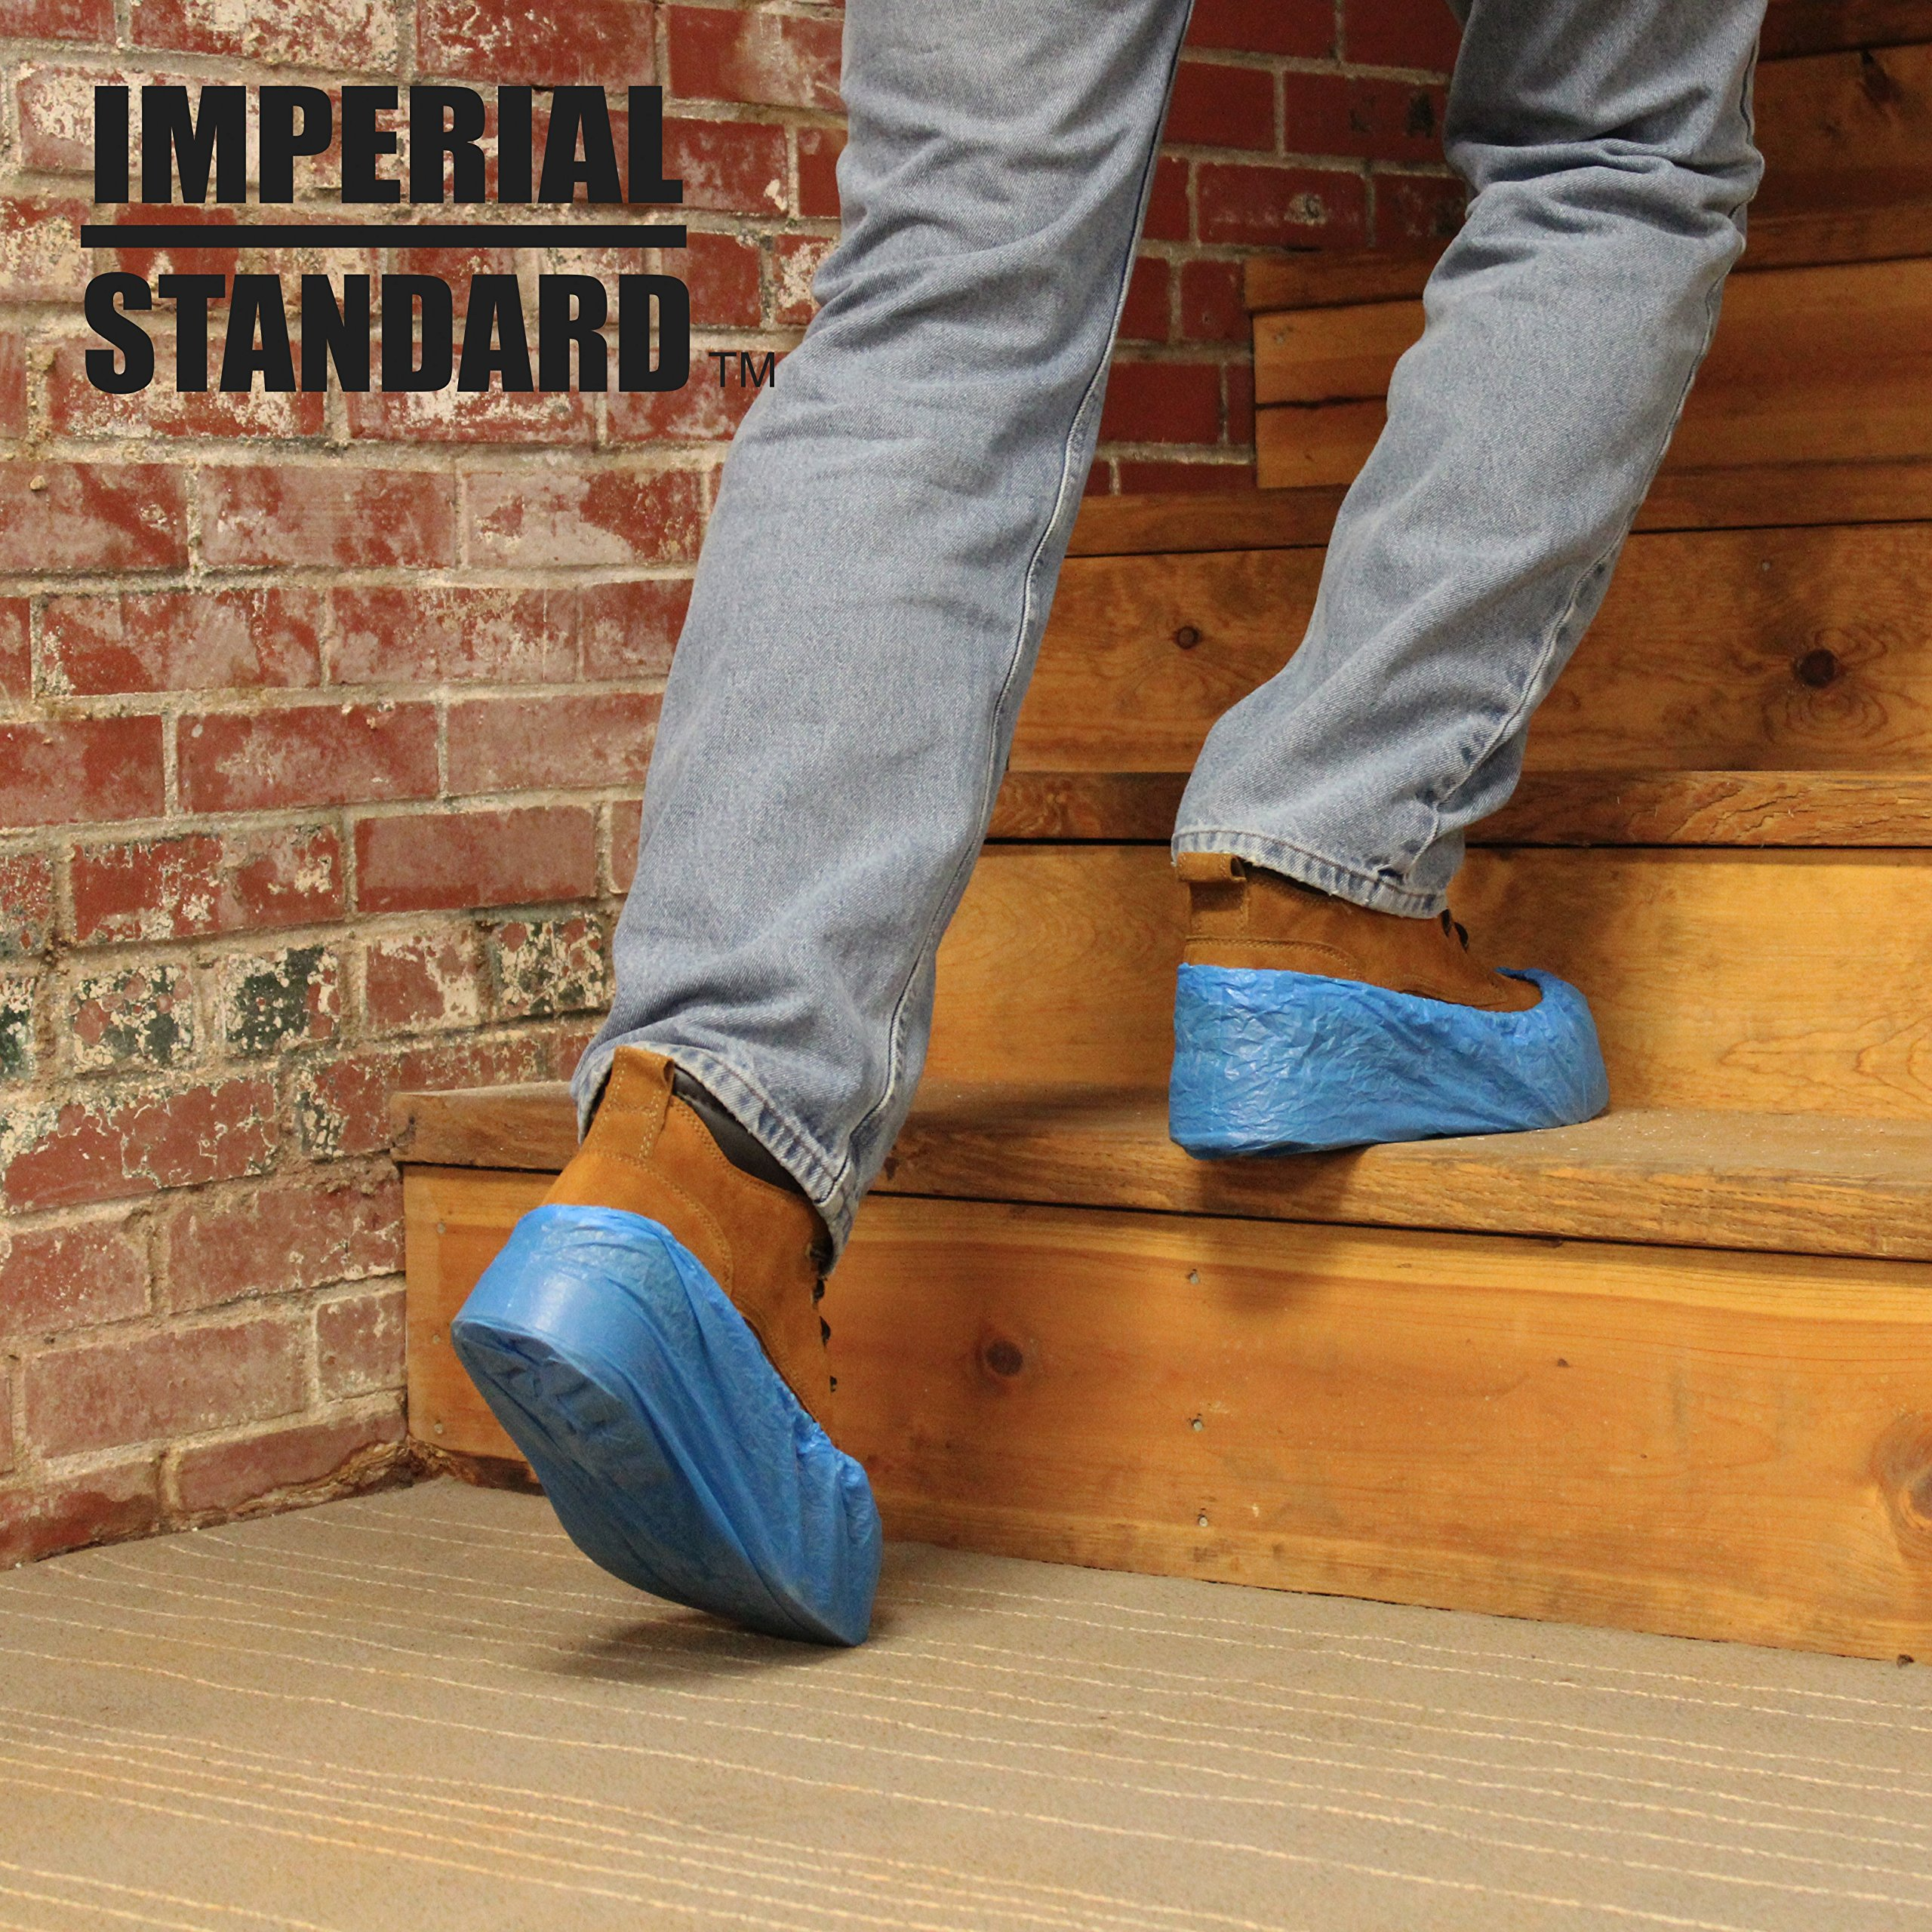 Waterproof Boot Covers for Professionals - XL Disposable Shoe Covers - Non-Slip Waterproof Shoe Protectors - Fits up to Size 13 Work Boot and Size 14 Shoe - (100 pack) by Imperial Standard (Image #5)